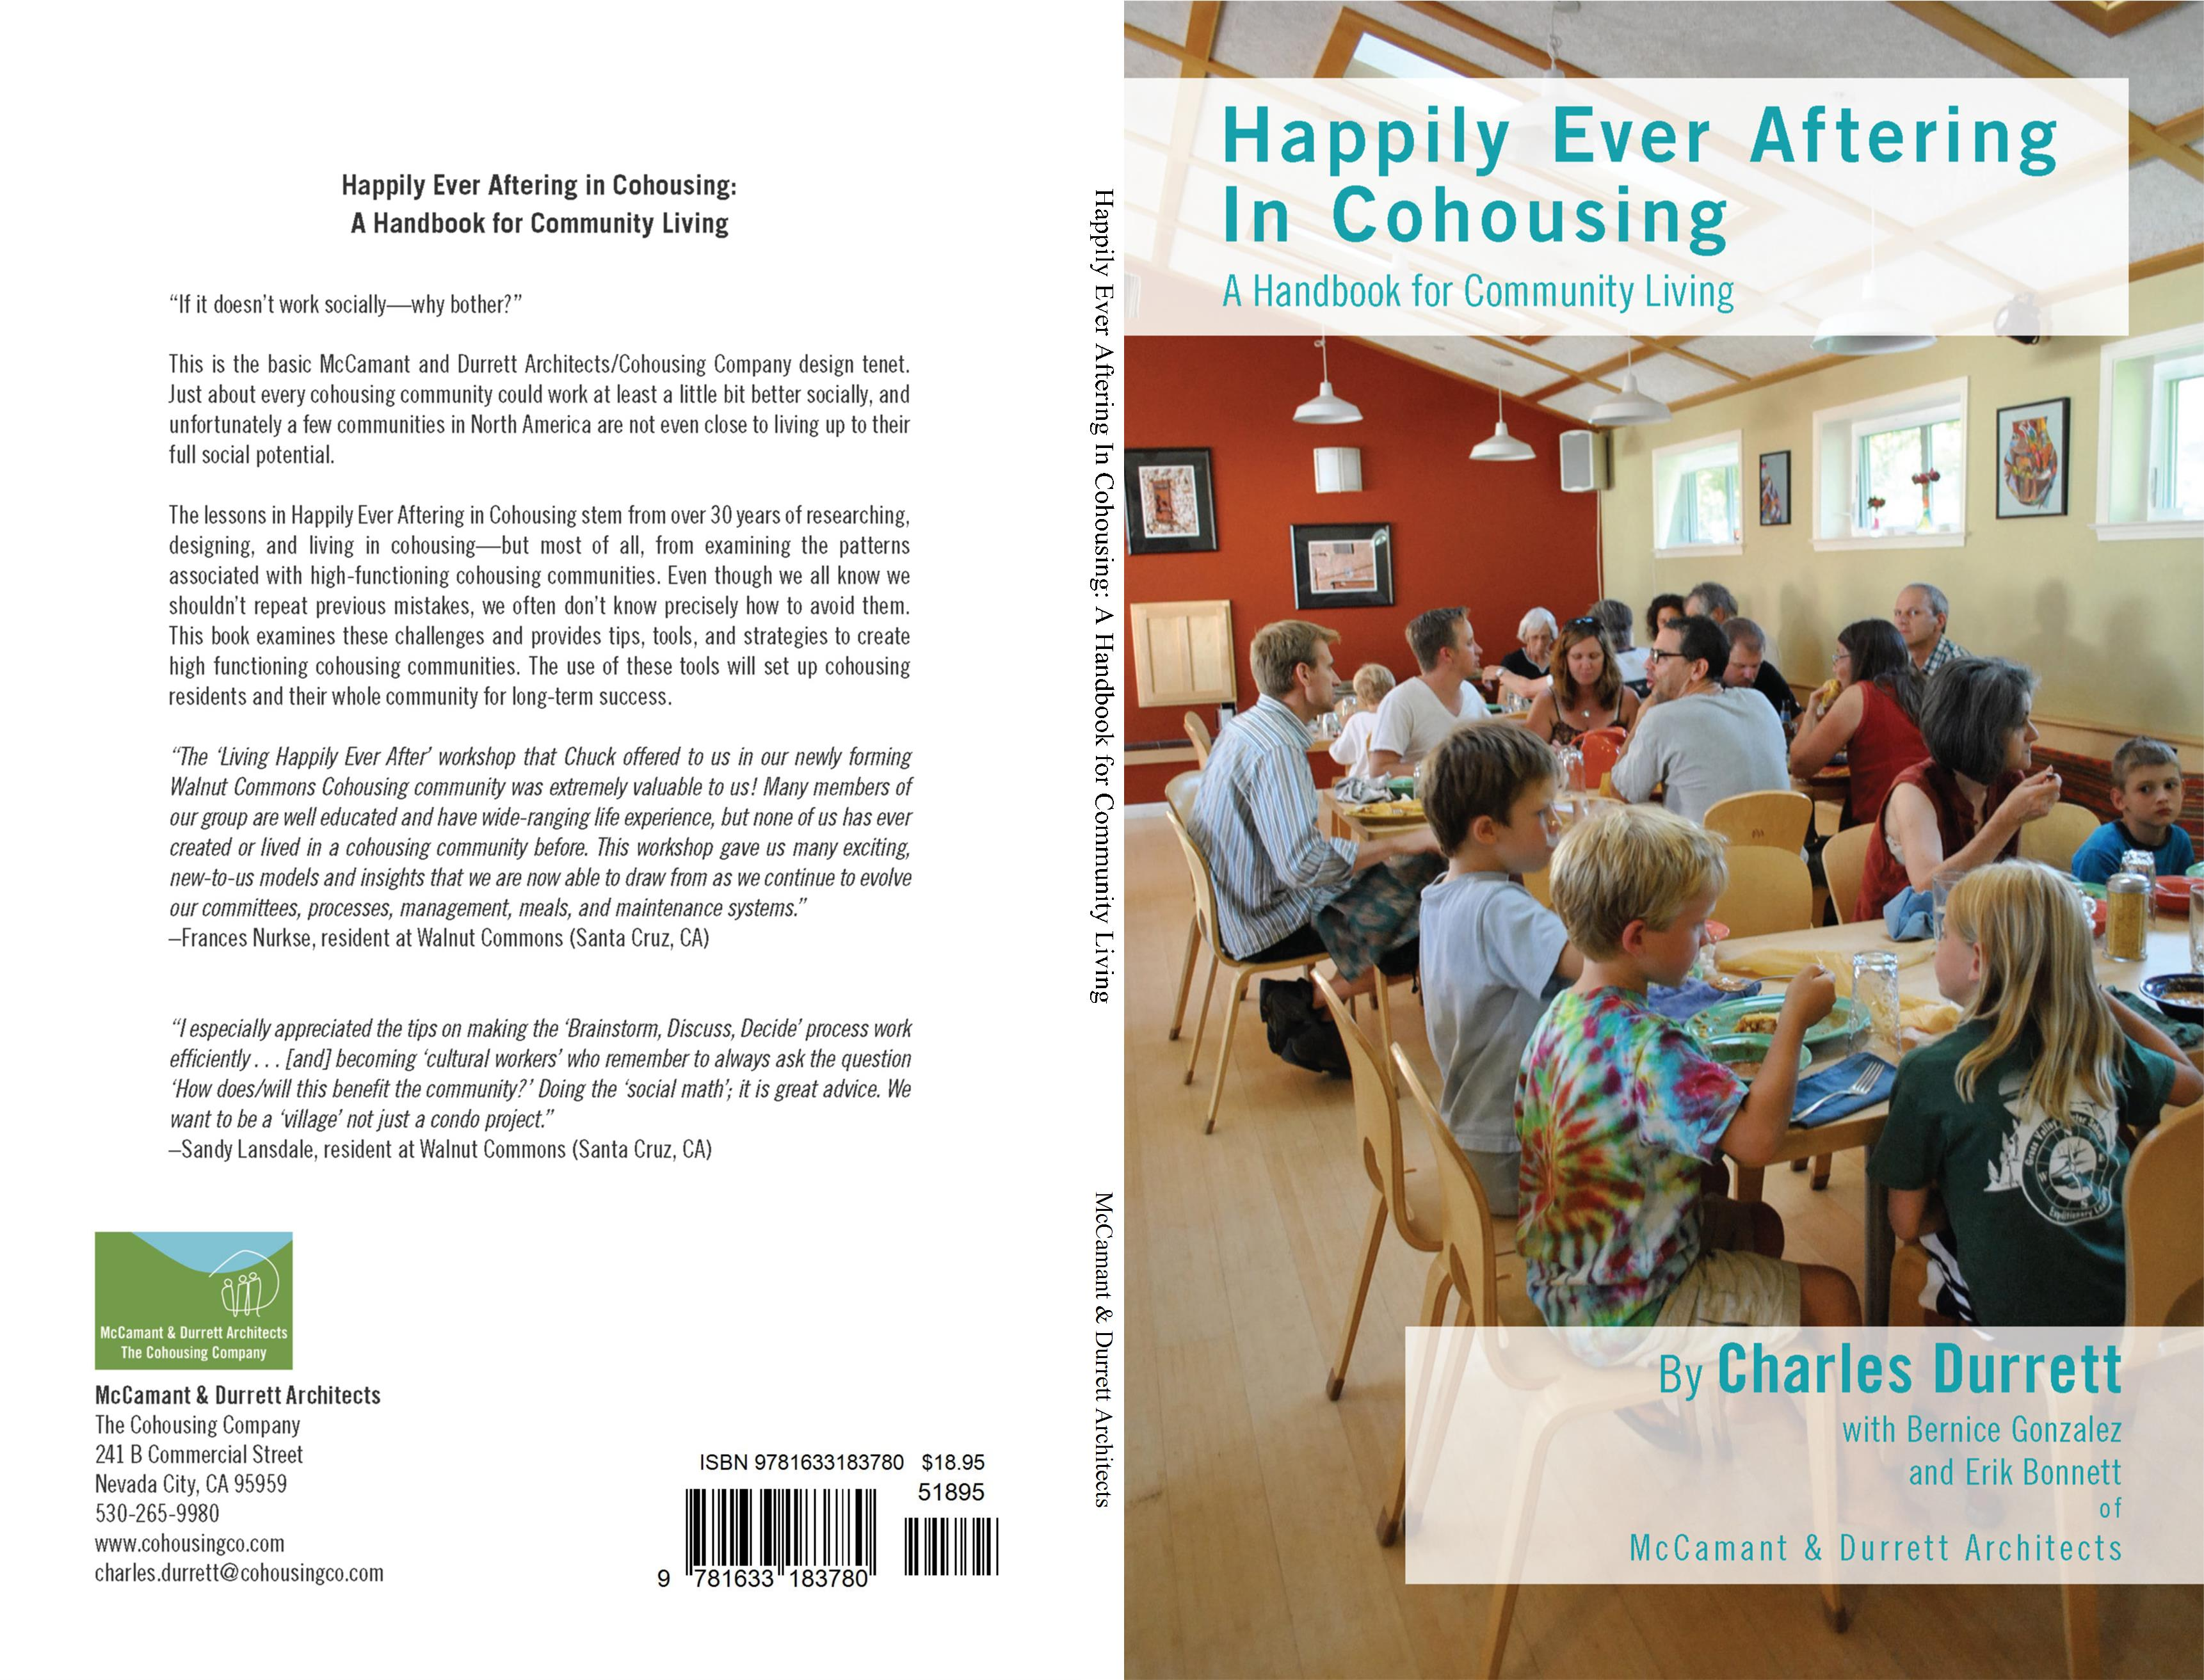 Happily Ever Aftering In Cohousing: A Handbook for Community Living cover image